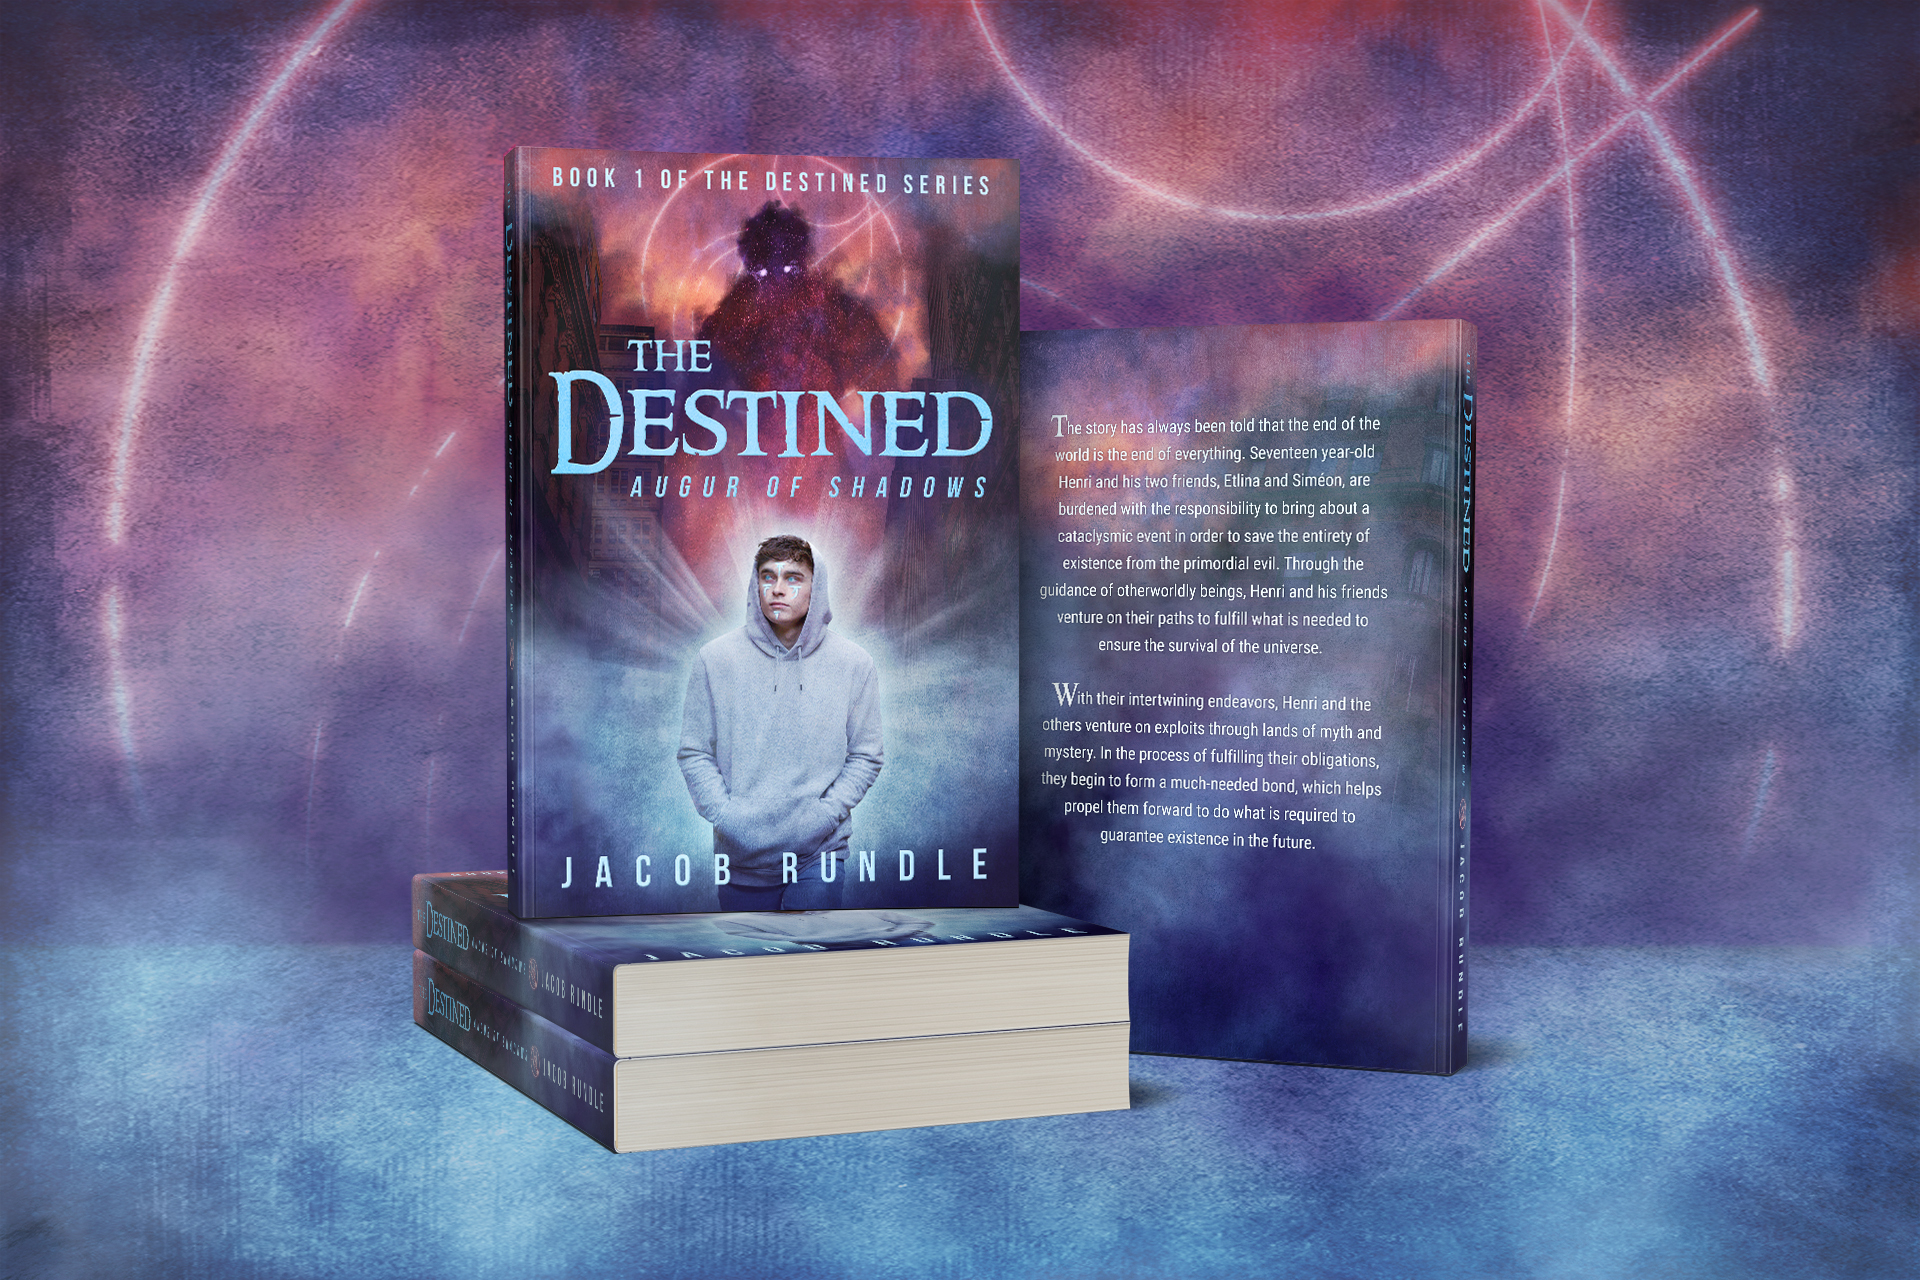 jacobrundle-thedestined-augurofshadows-paperback-promo (2).jpg